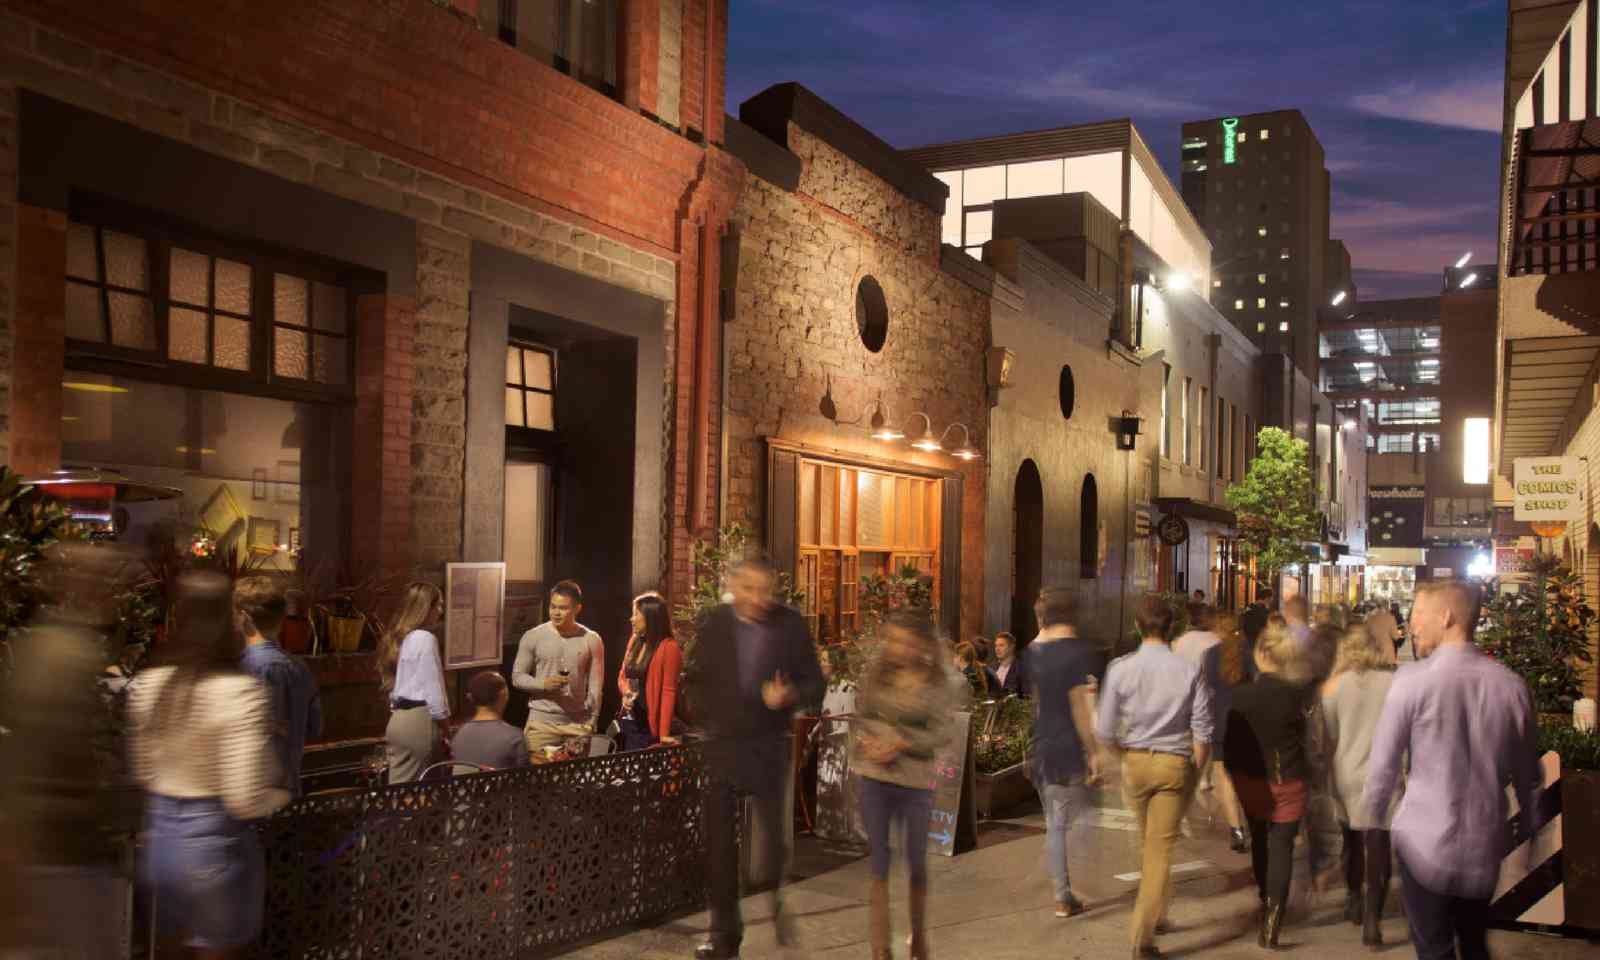 Pop-up bars in Adelaide (SATC)